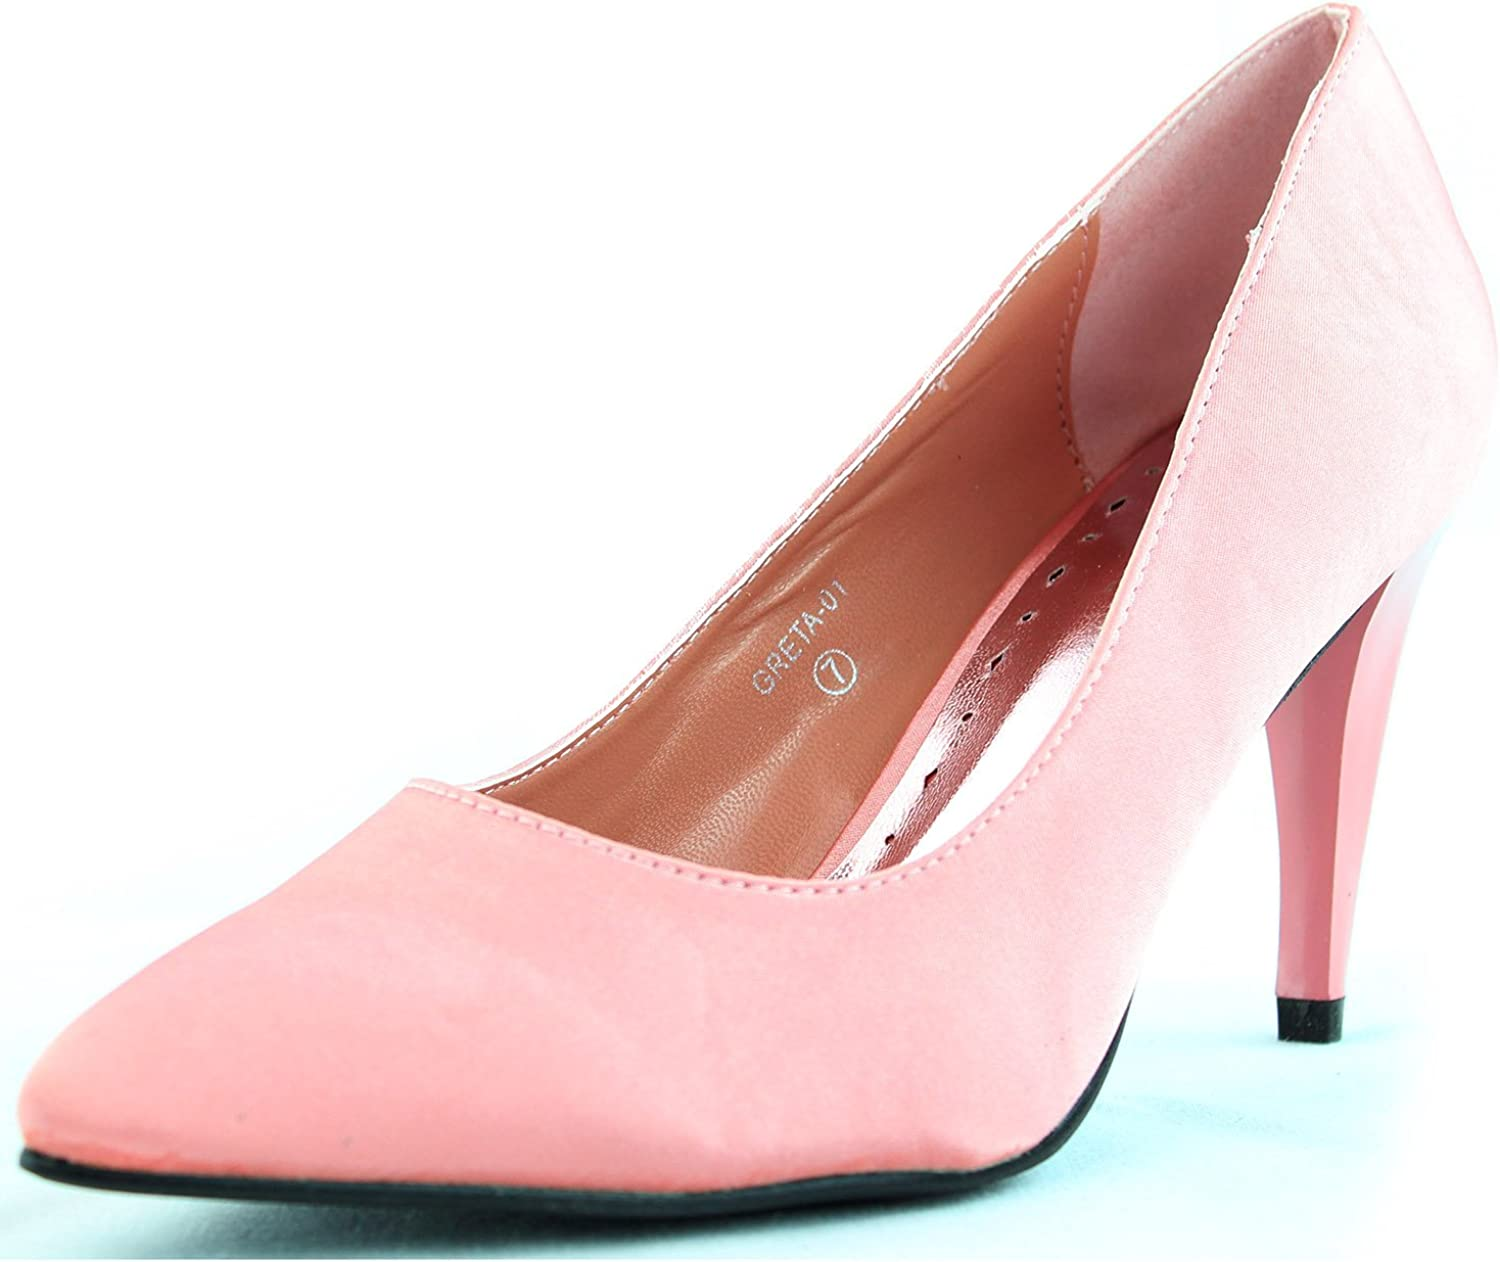 Nature Breeze Women's Smooth Satin Chunky High Heel Pointy Toe Pump Fashion Shoes